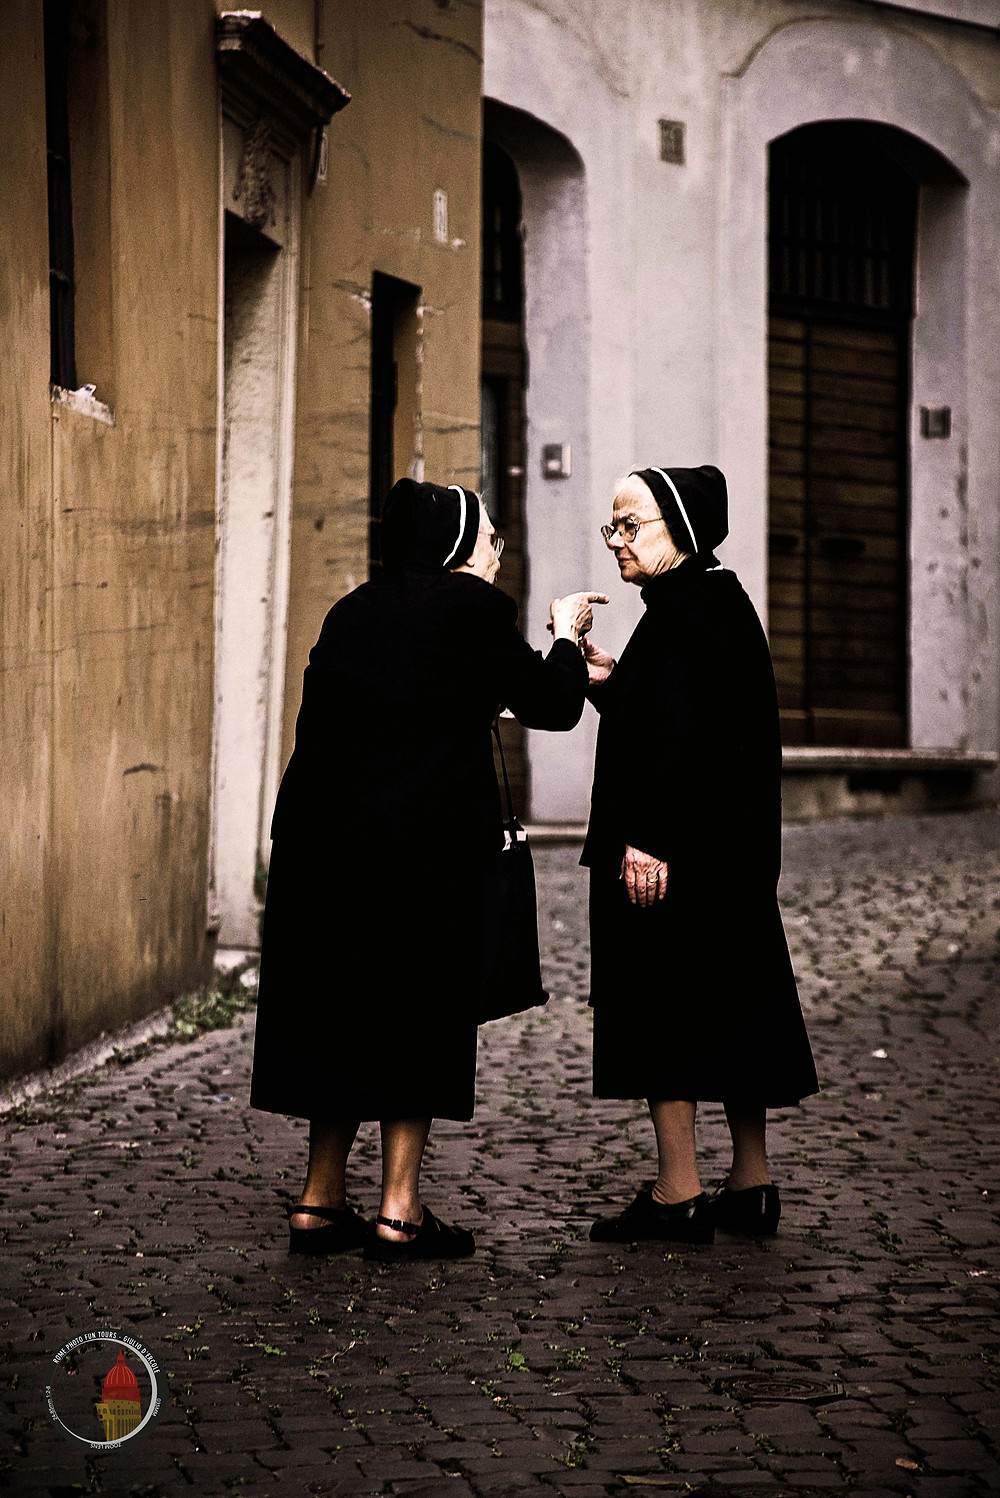 Capturing life as it happens is the core of street-photography art. Learn it with Giulio D'Ercole's workshops in Rome.